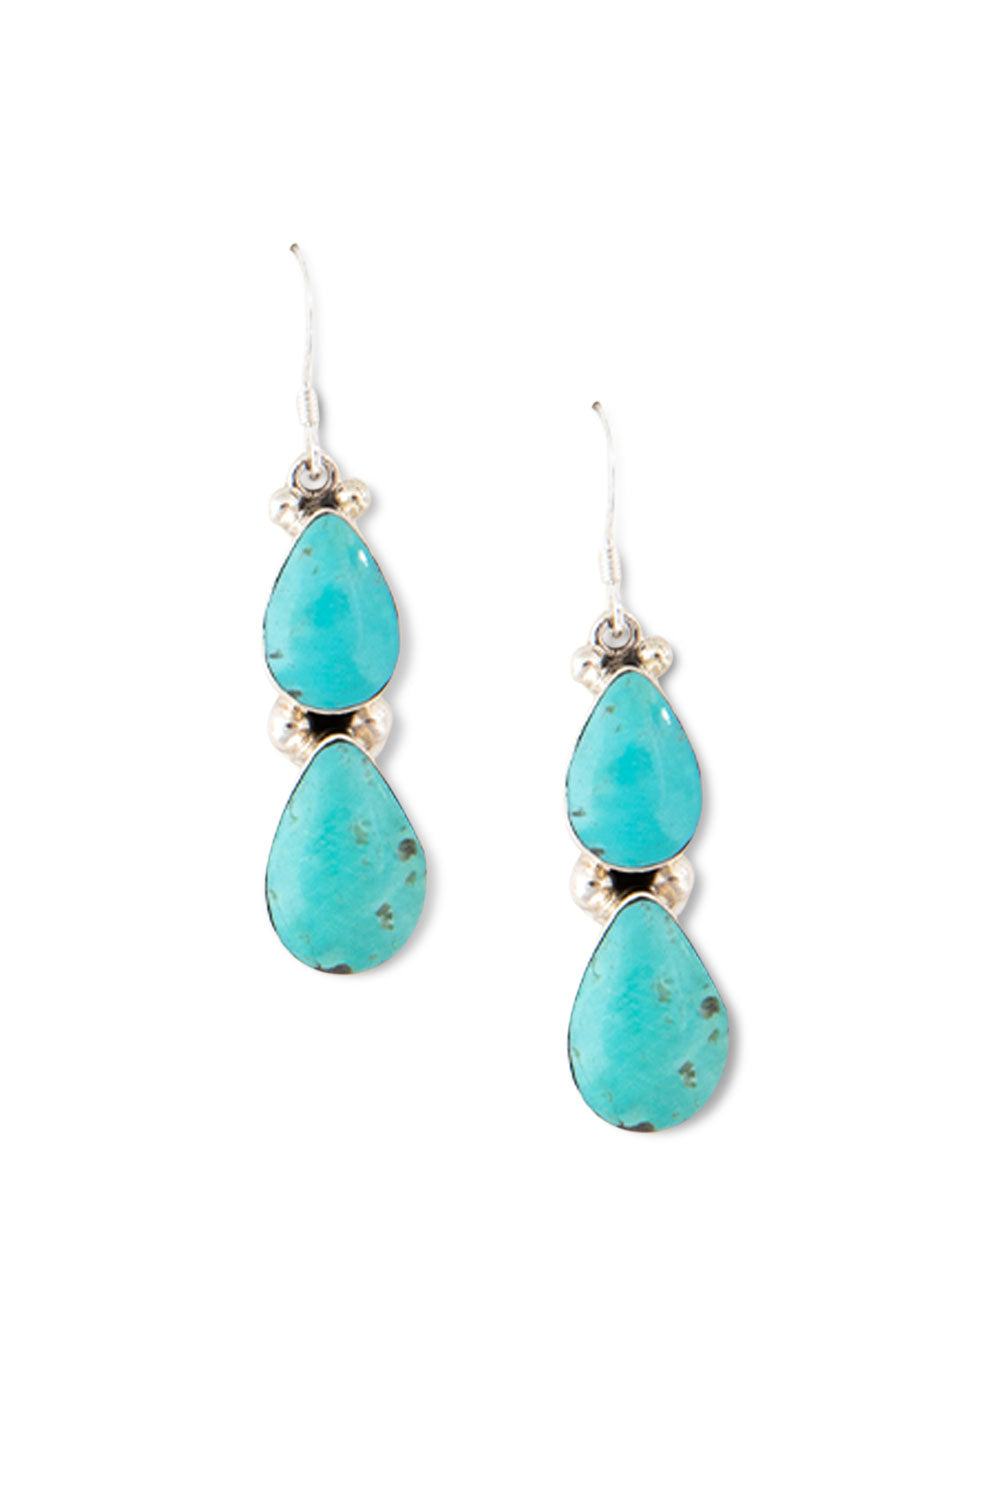 Earrings, Chandelier, Turquoise, 420